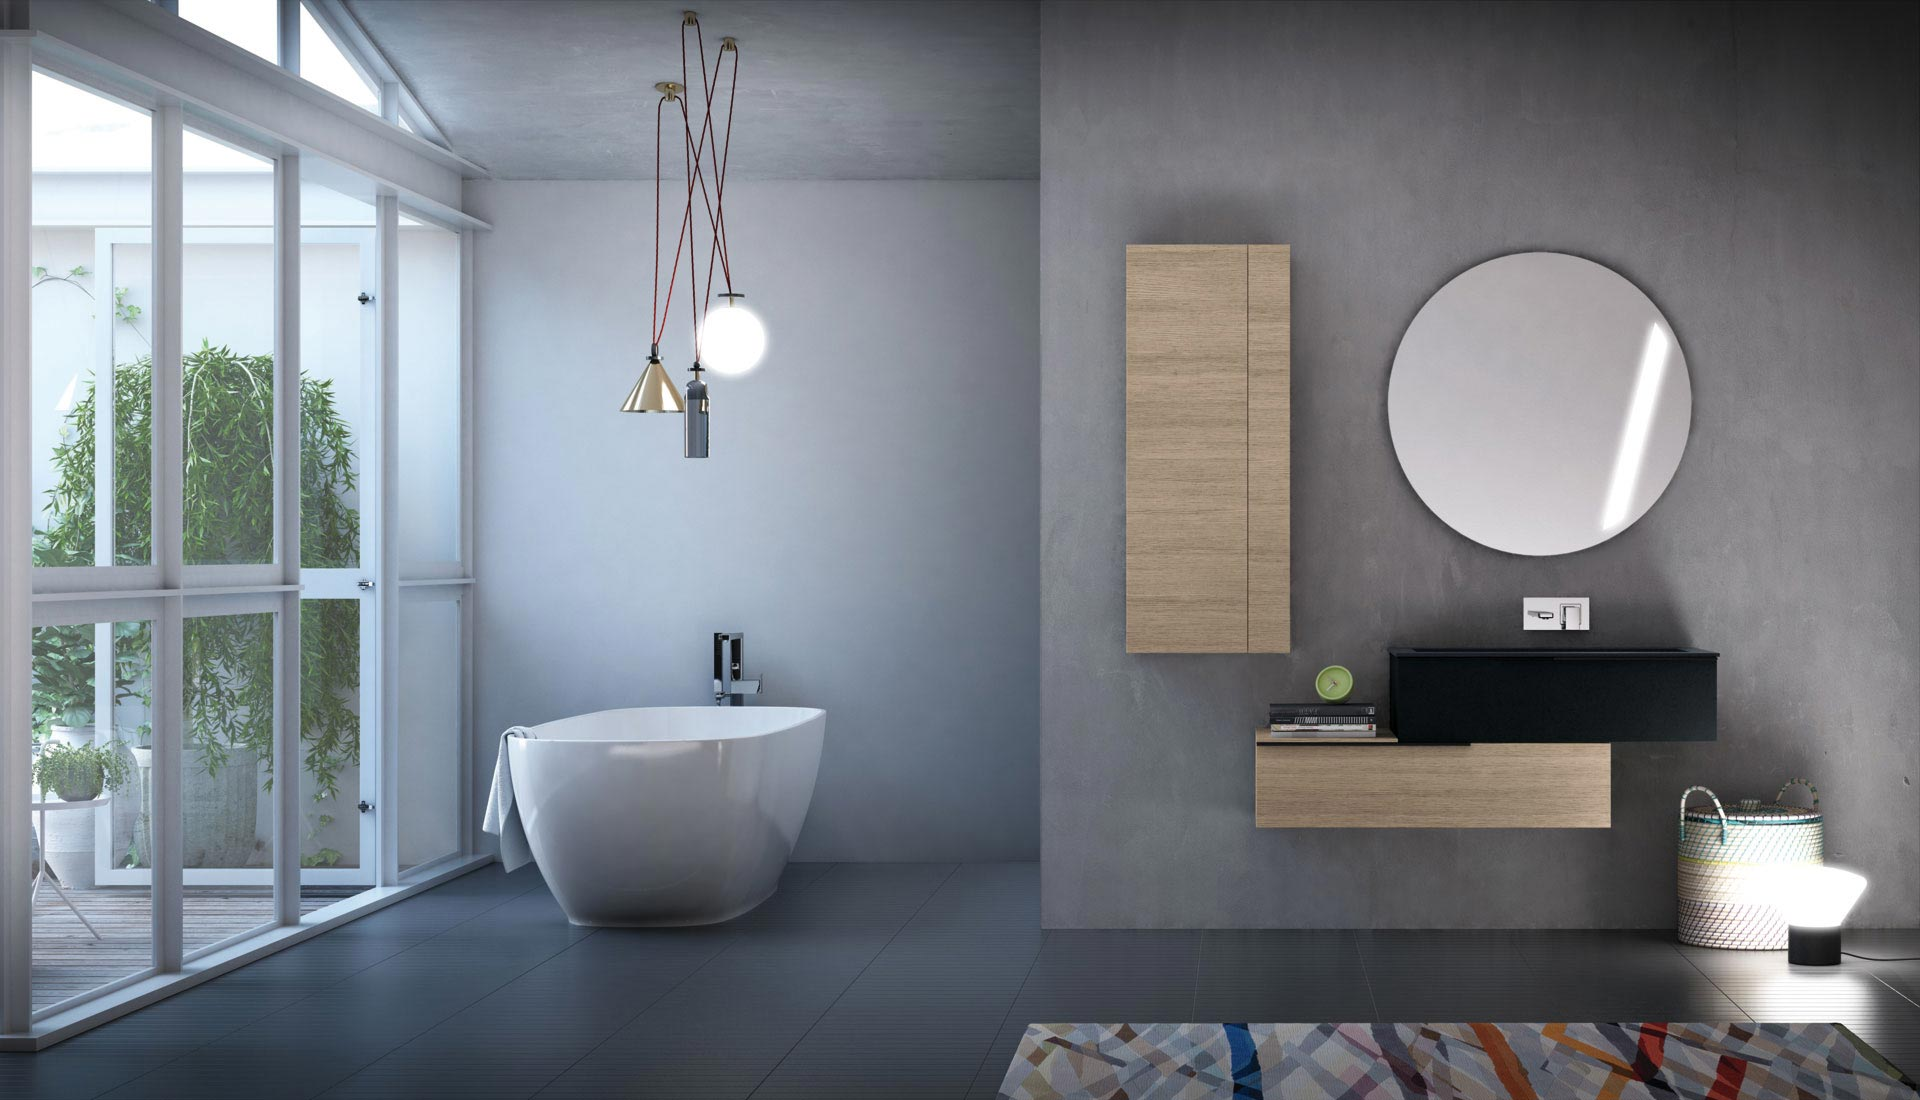 puntotre bathrooms furniture and bath furnishing ideas - Arredo Bagno Casa